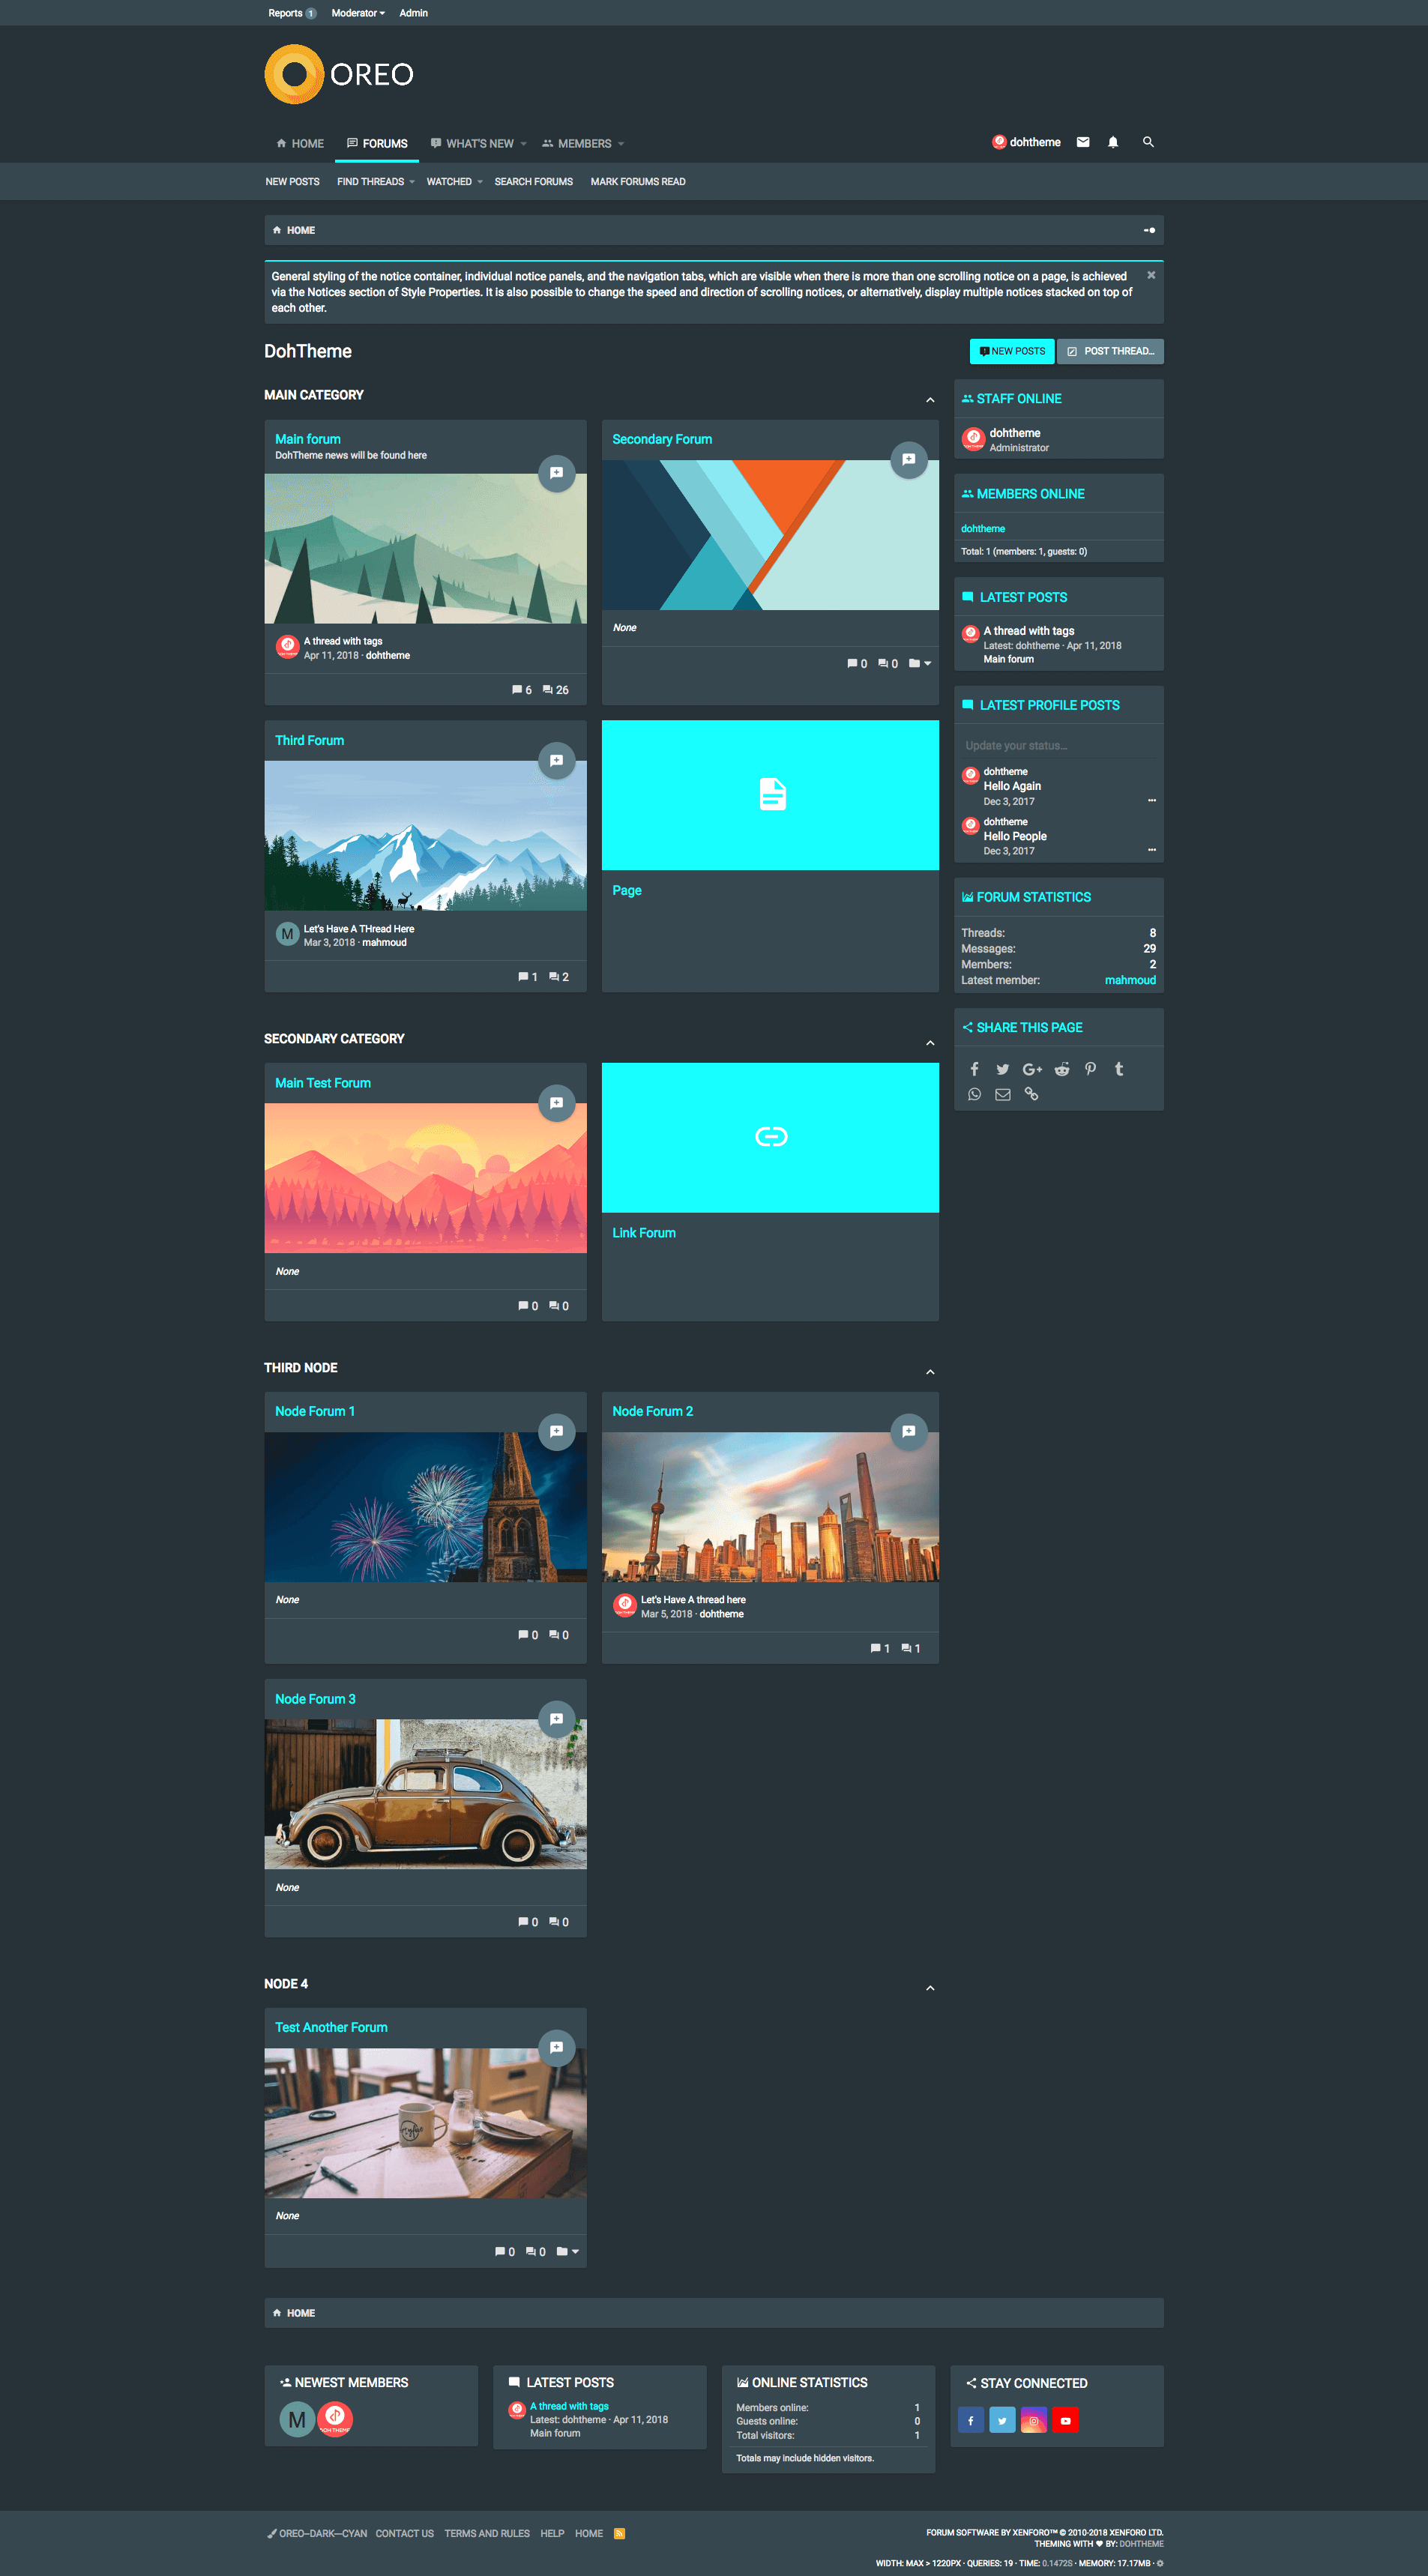 Screenshot-2018-5-5 DohTheme(5).png